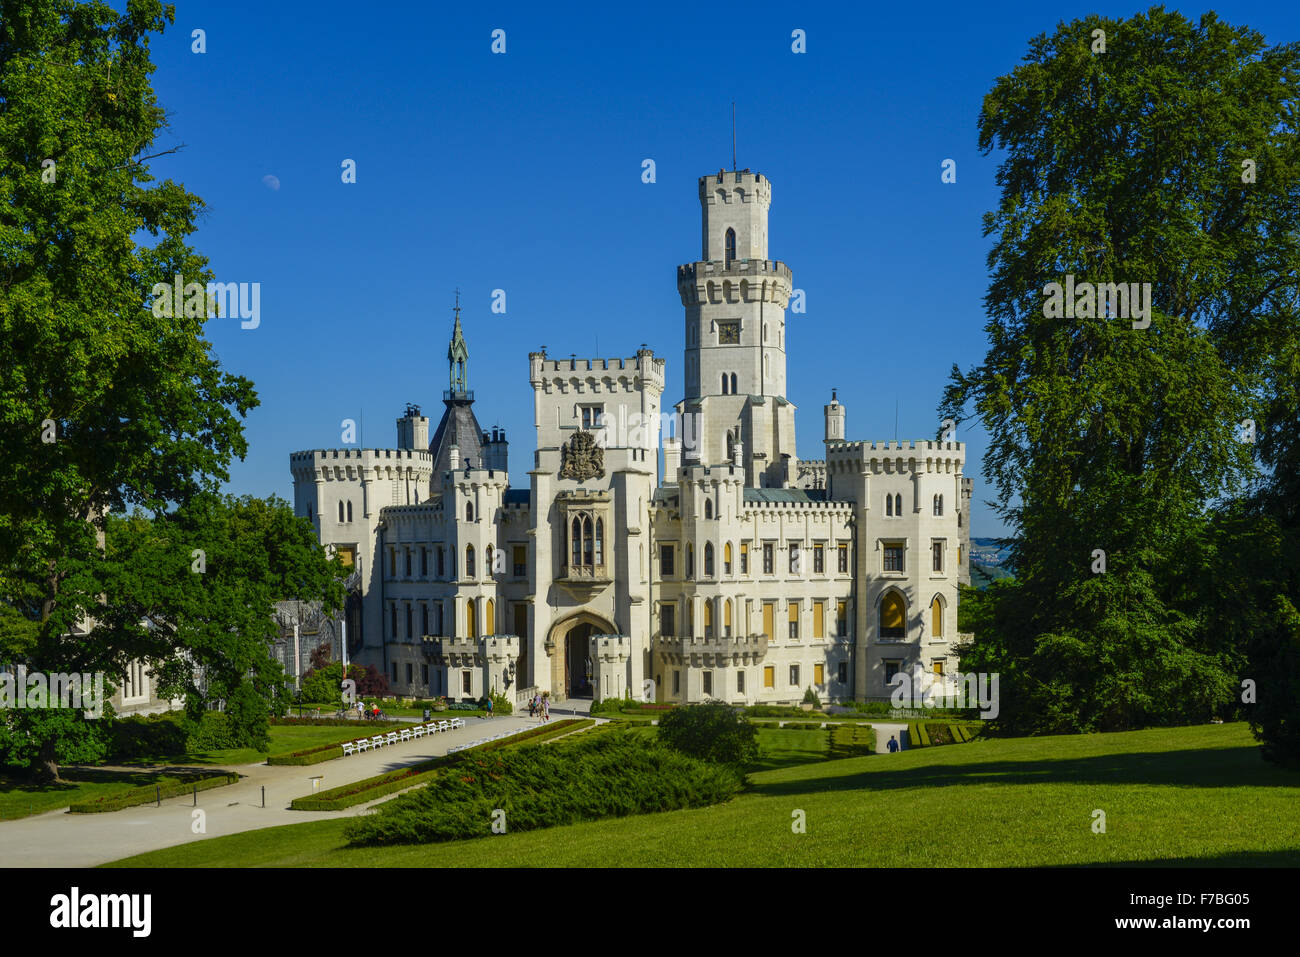 Castle Hluboka nad Vltavou, Frauenberg, Czech Republic, Southern Bohemia, Hluboca Stock Photo